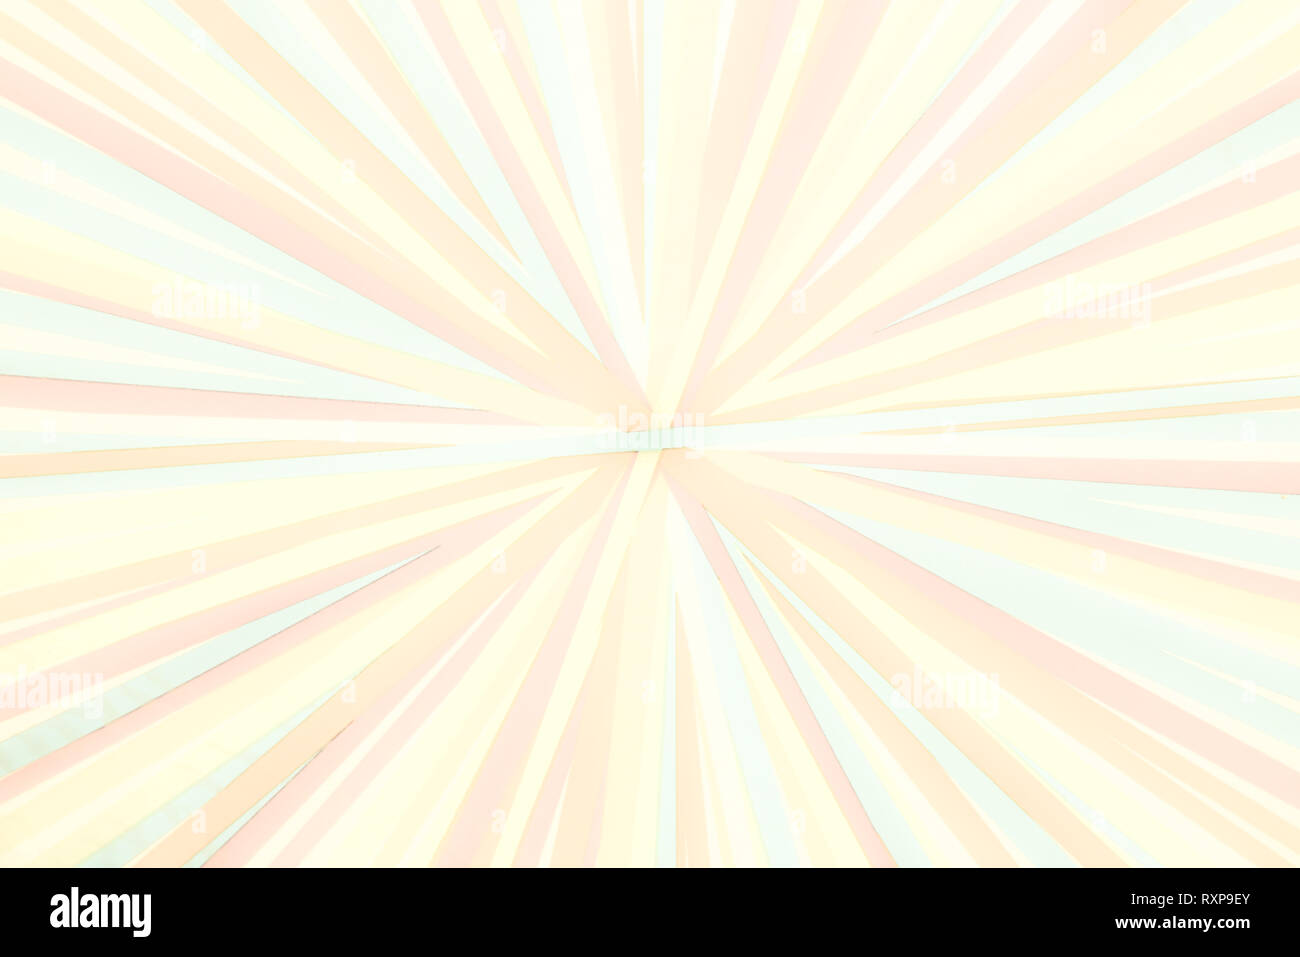 Converging lines - colorful stripes - Bright rainbow spectrum of colors radial converging lines background - Stock Image